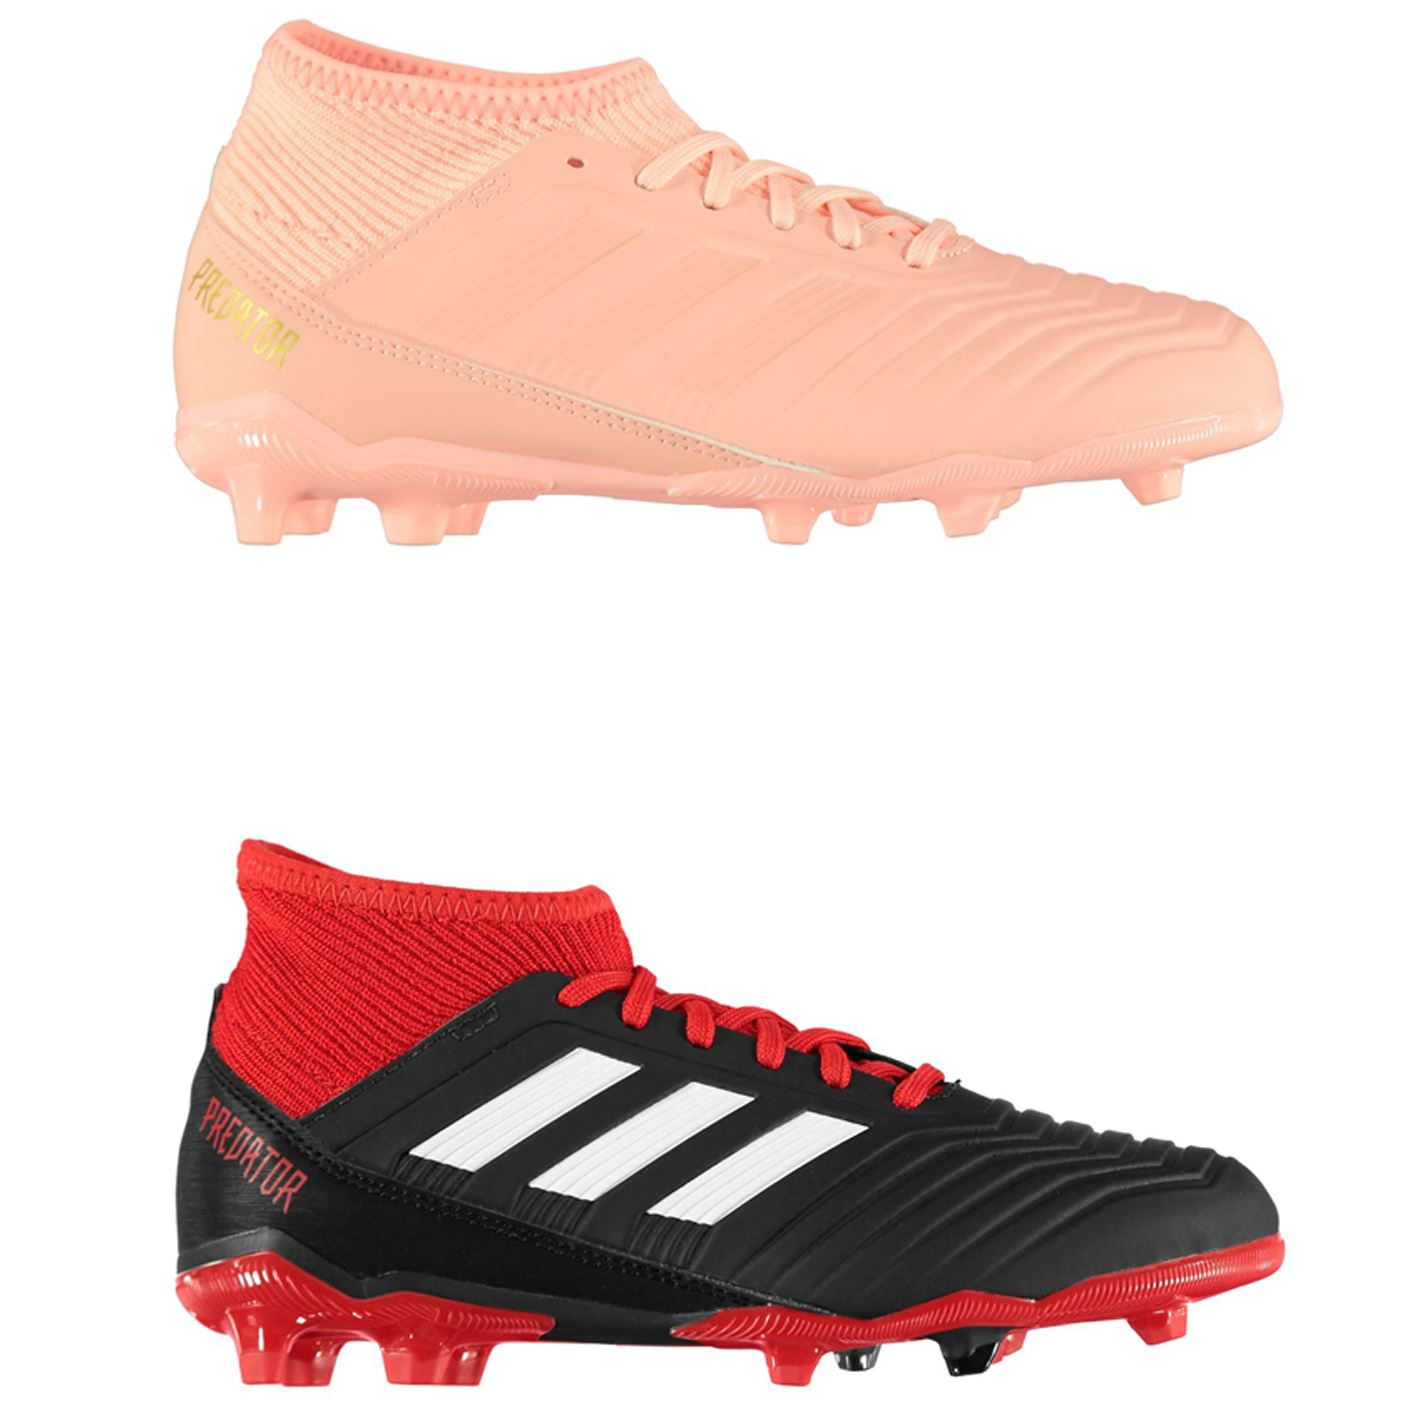 a887a6ff94dc ... adidas Predator 18.3 FG Firm Ground Football Boots Juniors Soccer Shoes  Cleats ...